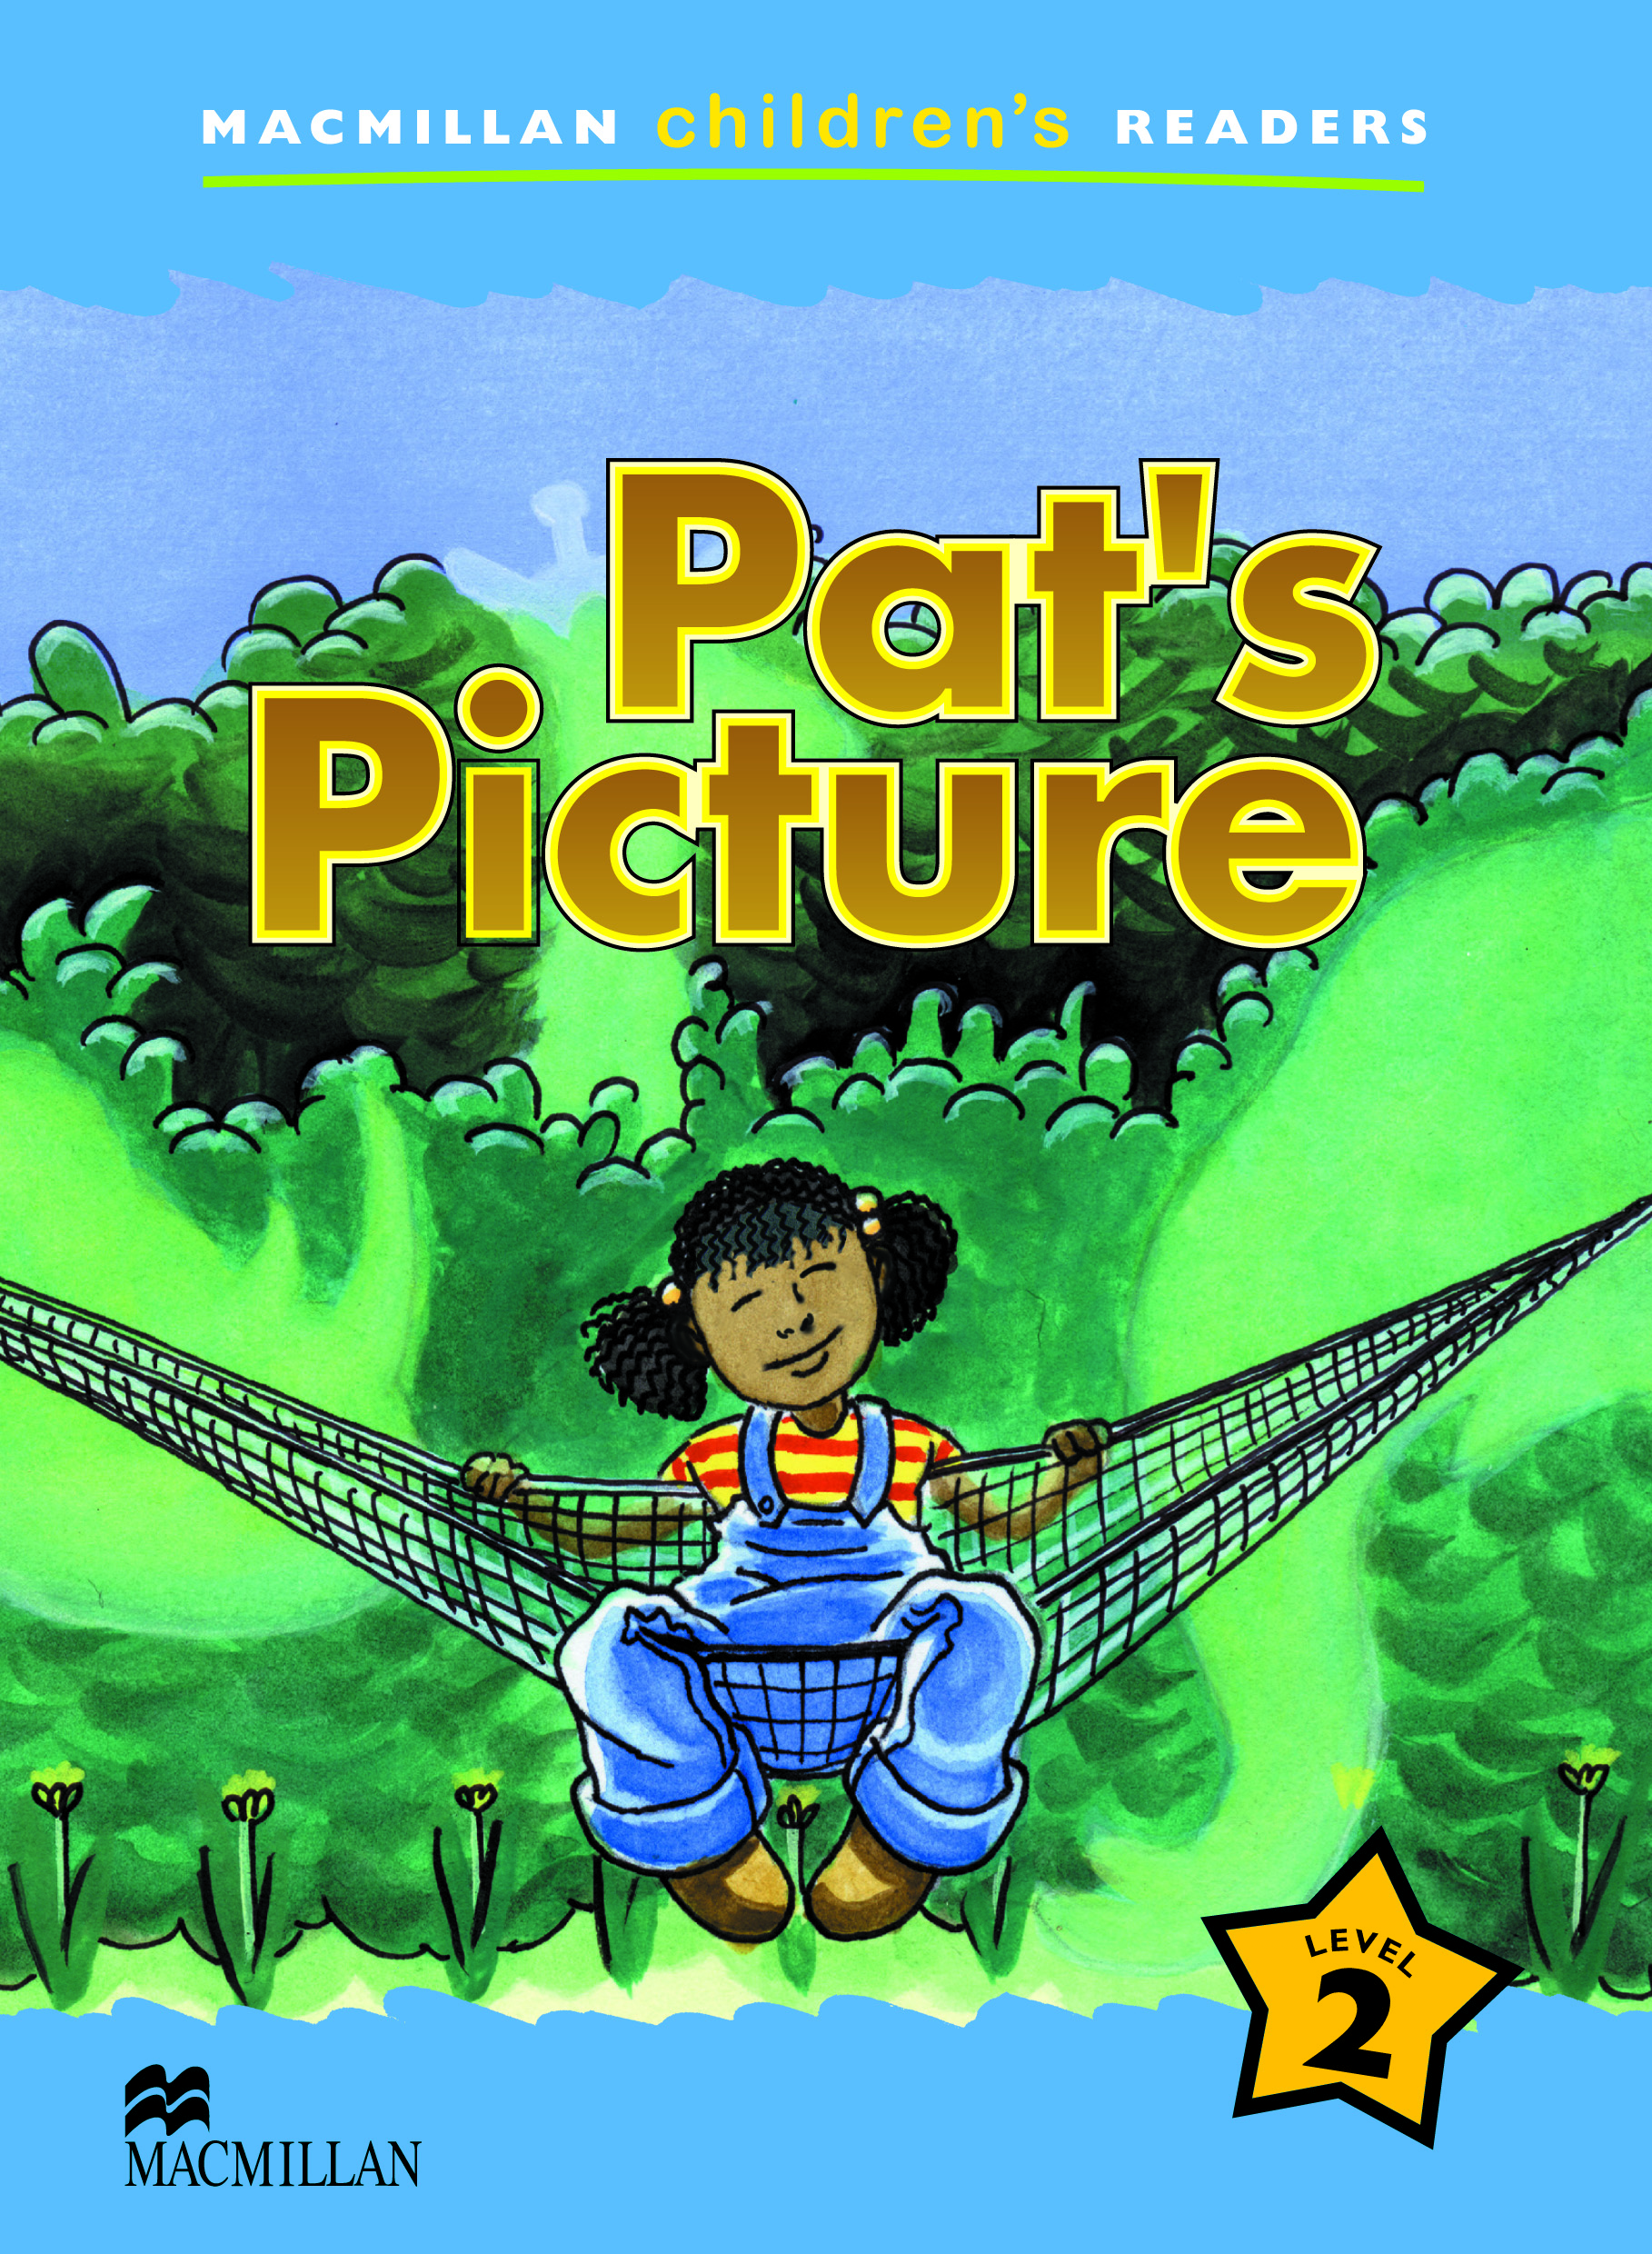 Pat's Picture